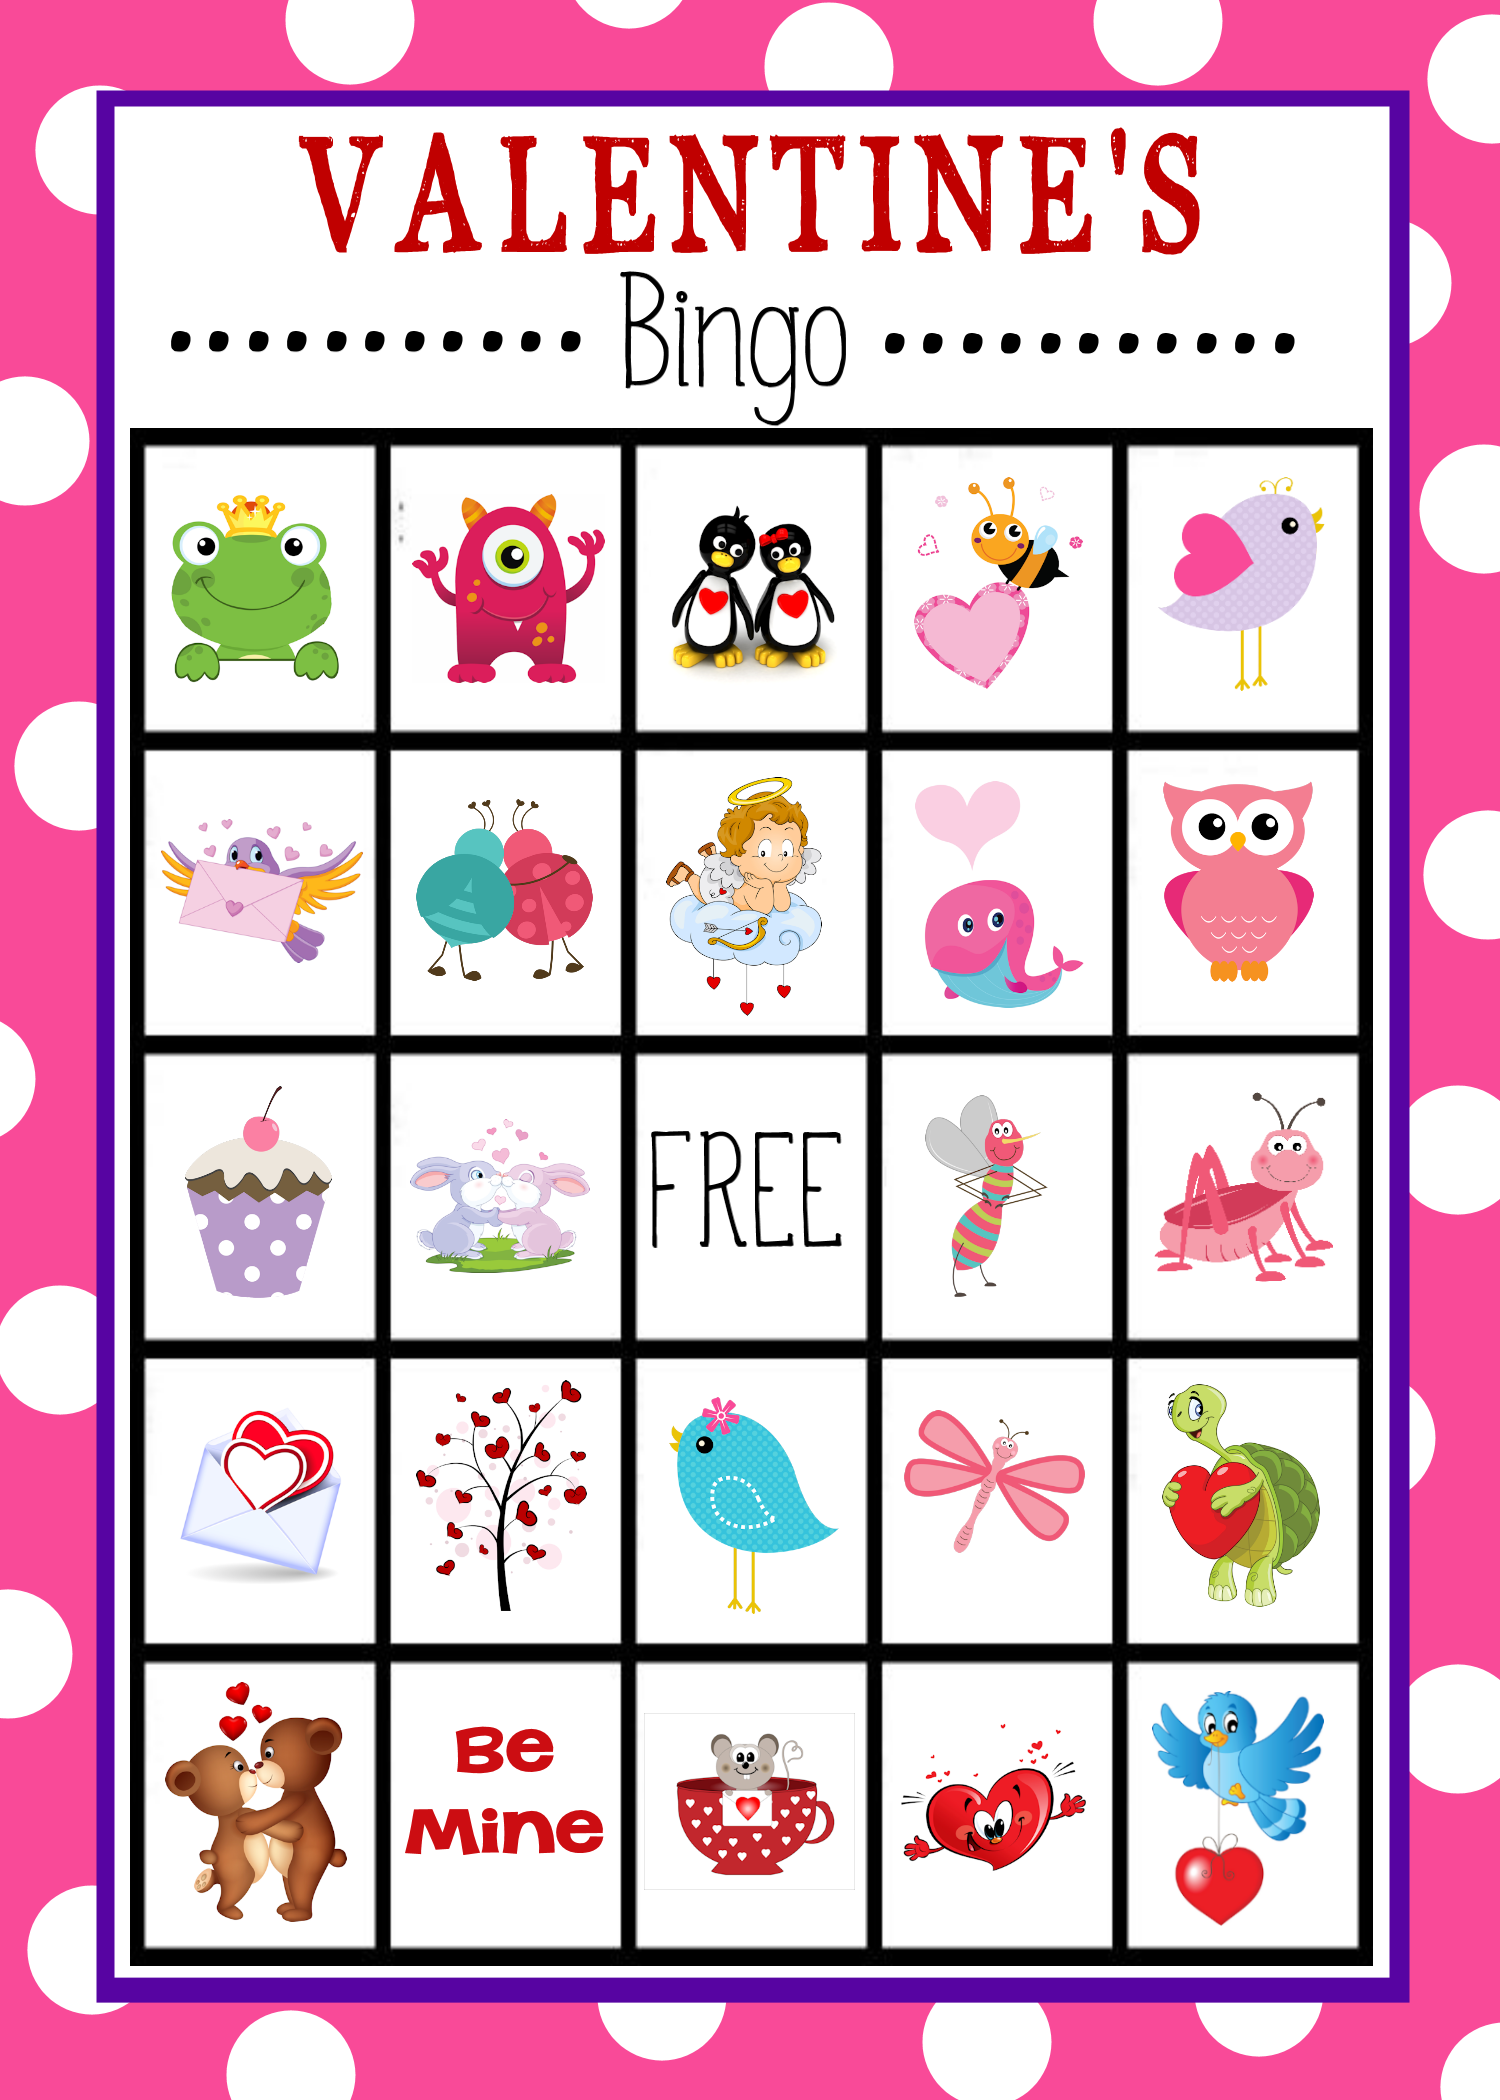 Free Printable Valentines Day Bingo Game Crazy Little Projects – Valentines Day Bingo Cards